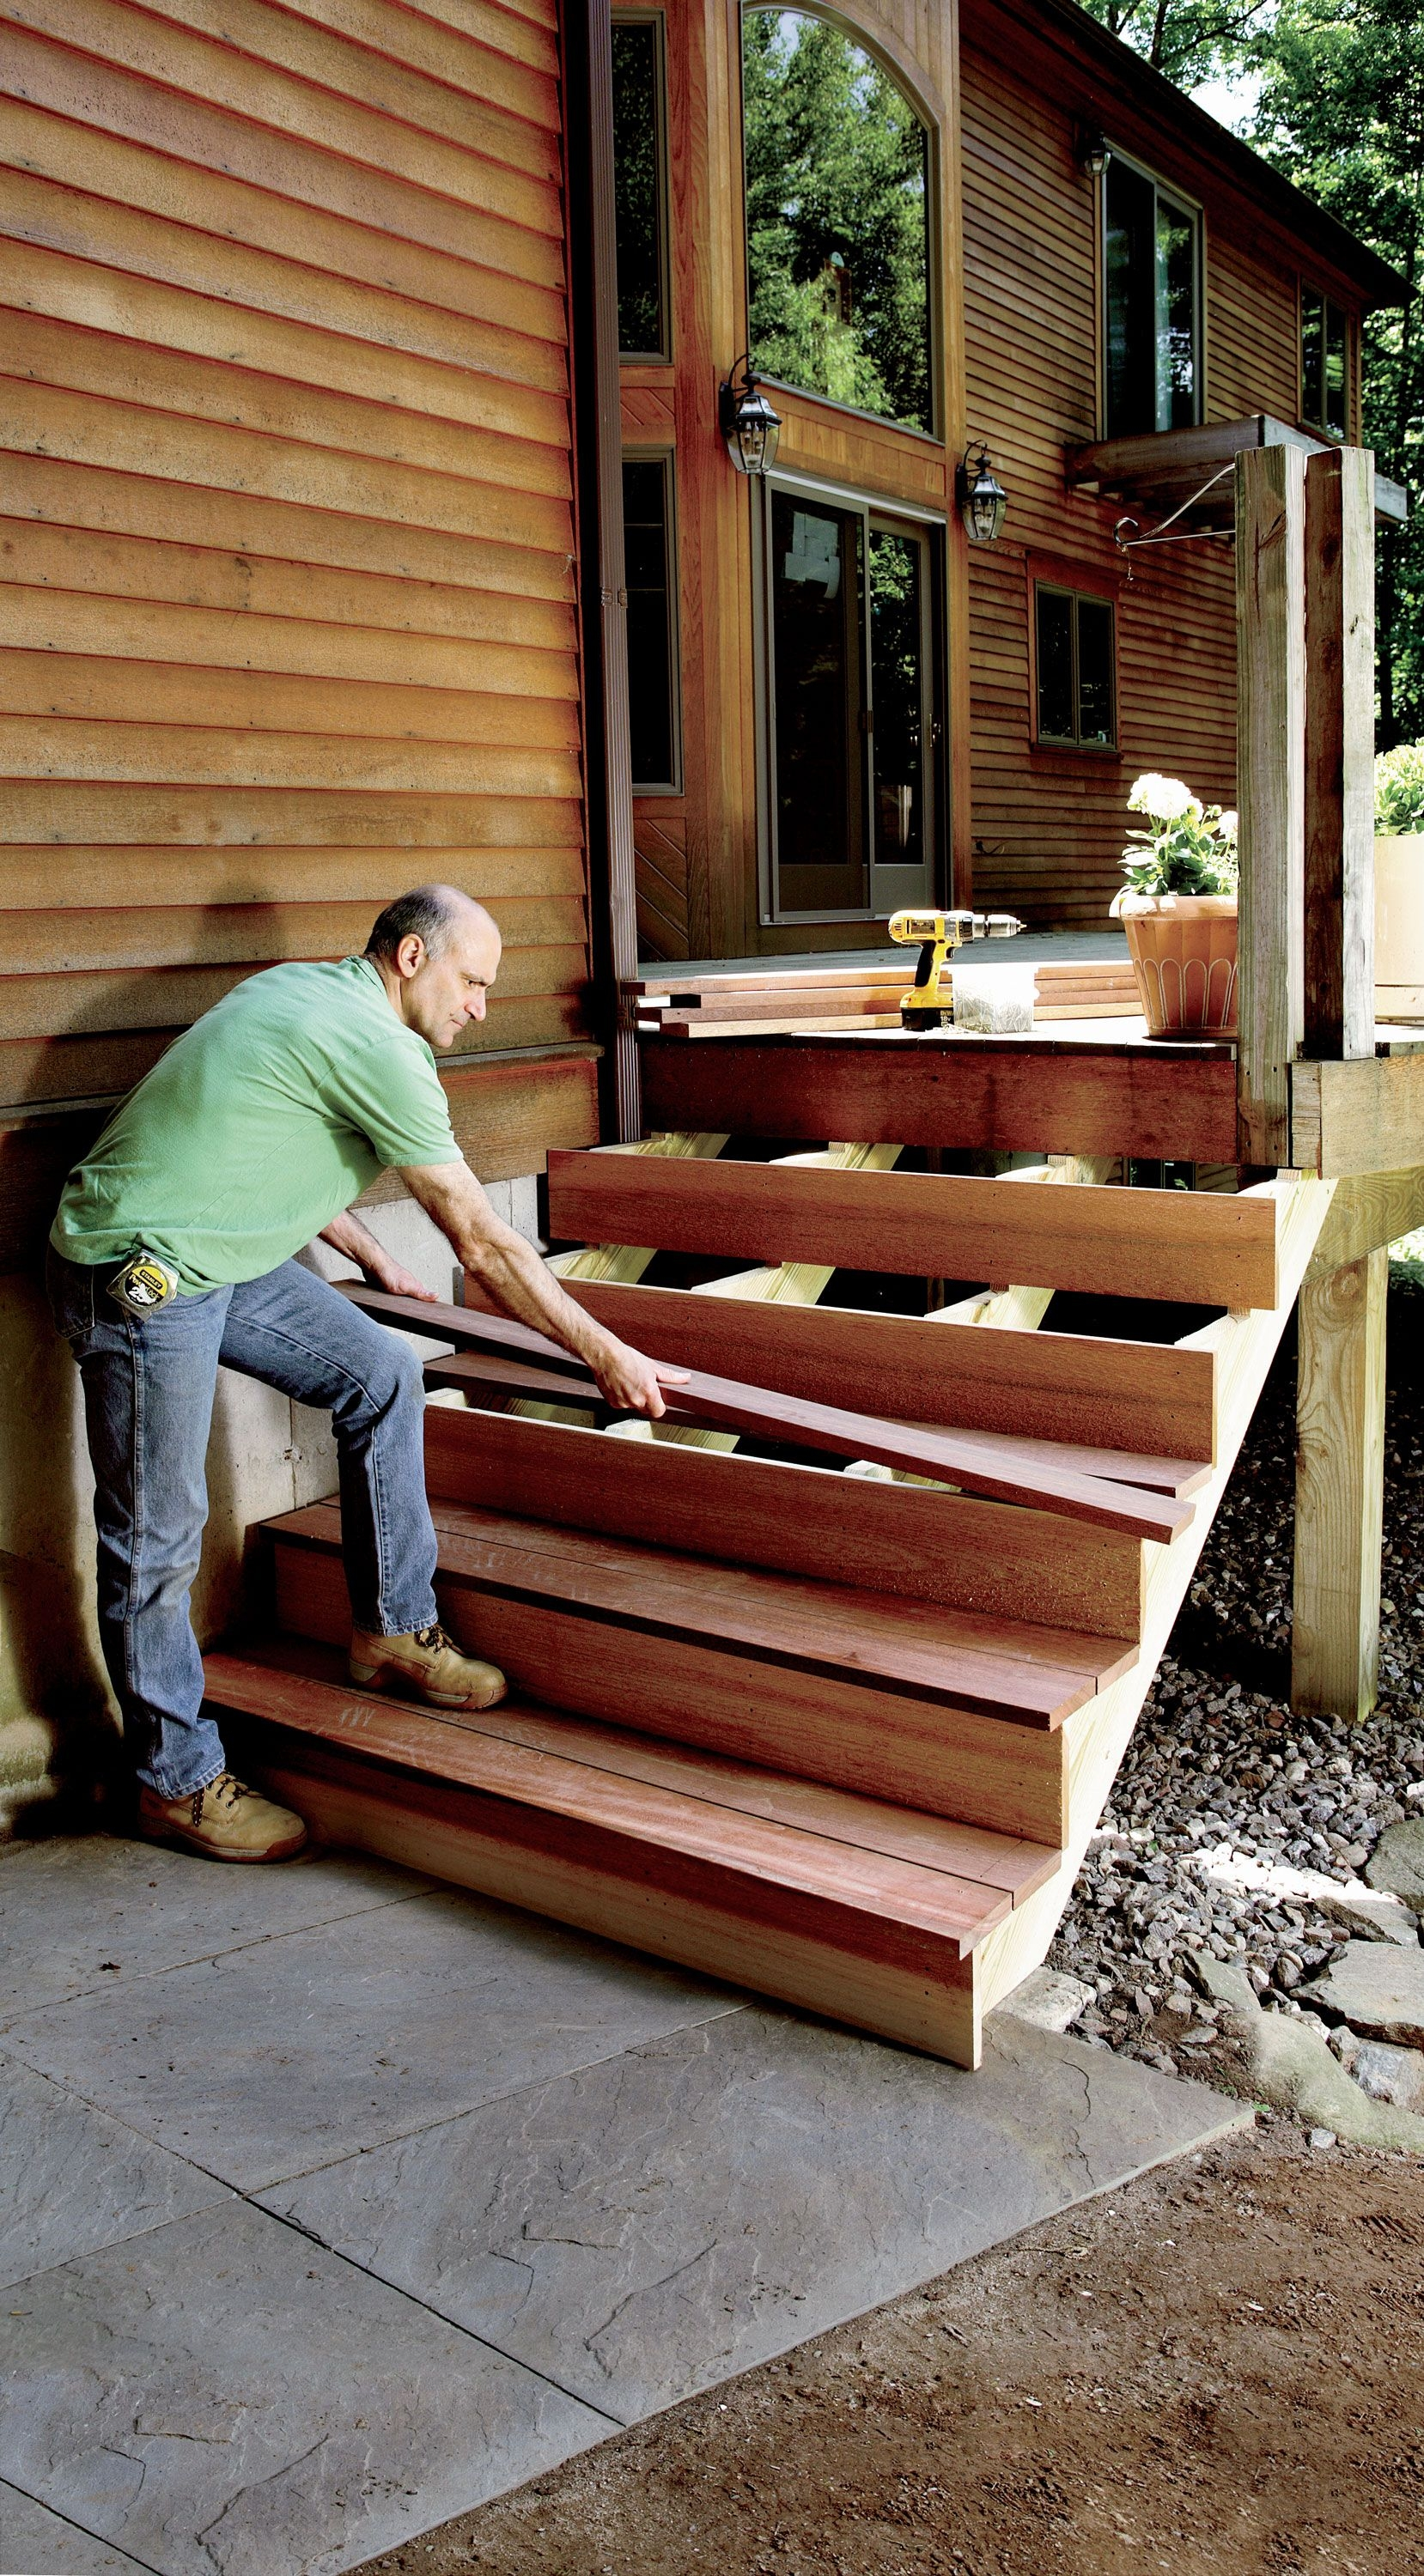 How To Build Stairs Stairs Design Plans | Best Wood To Use For Stair Treads | Oak | Stair Stringers | Carpet Treads | Stair Nosing | Stringers